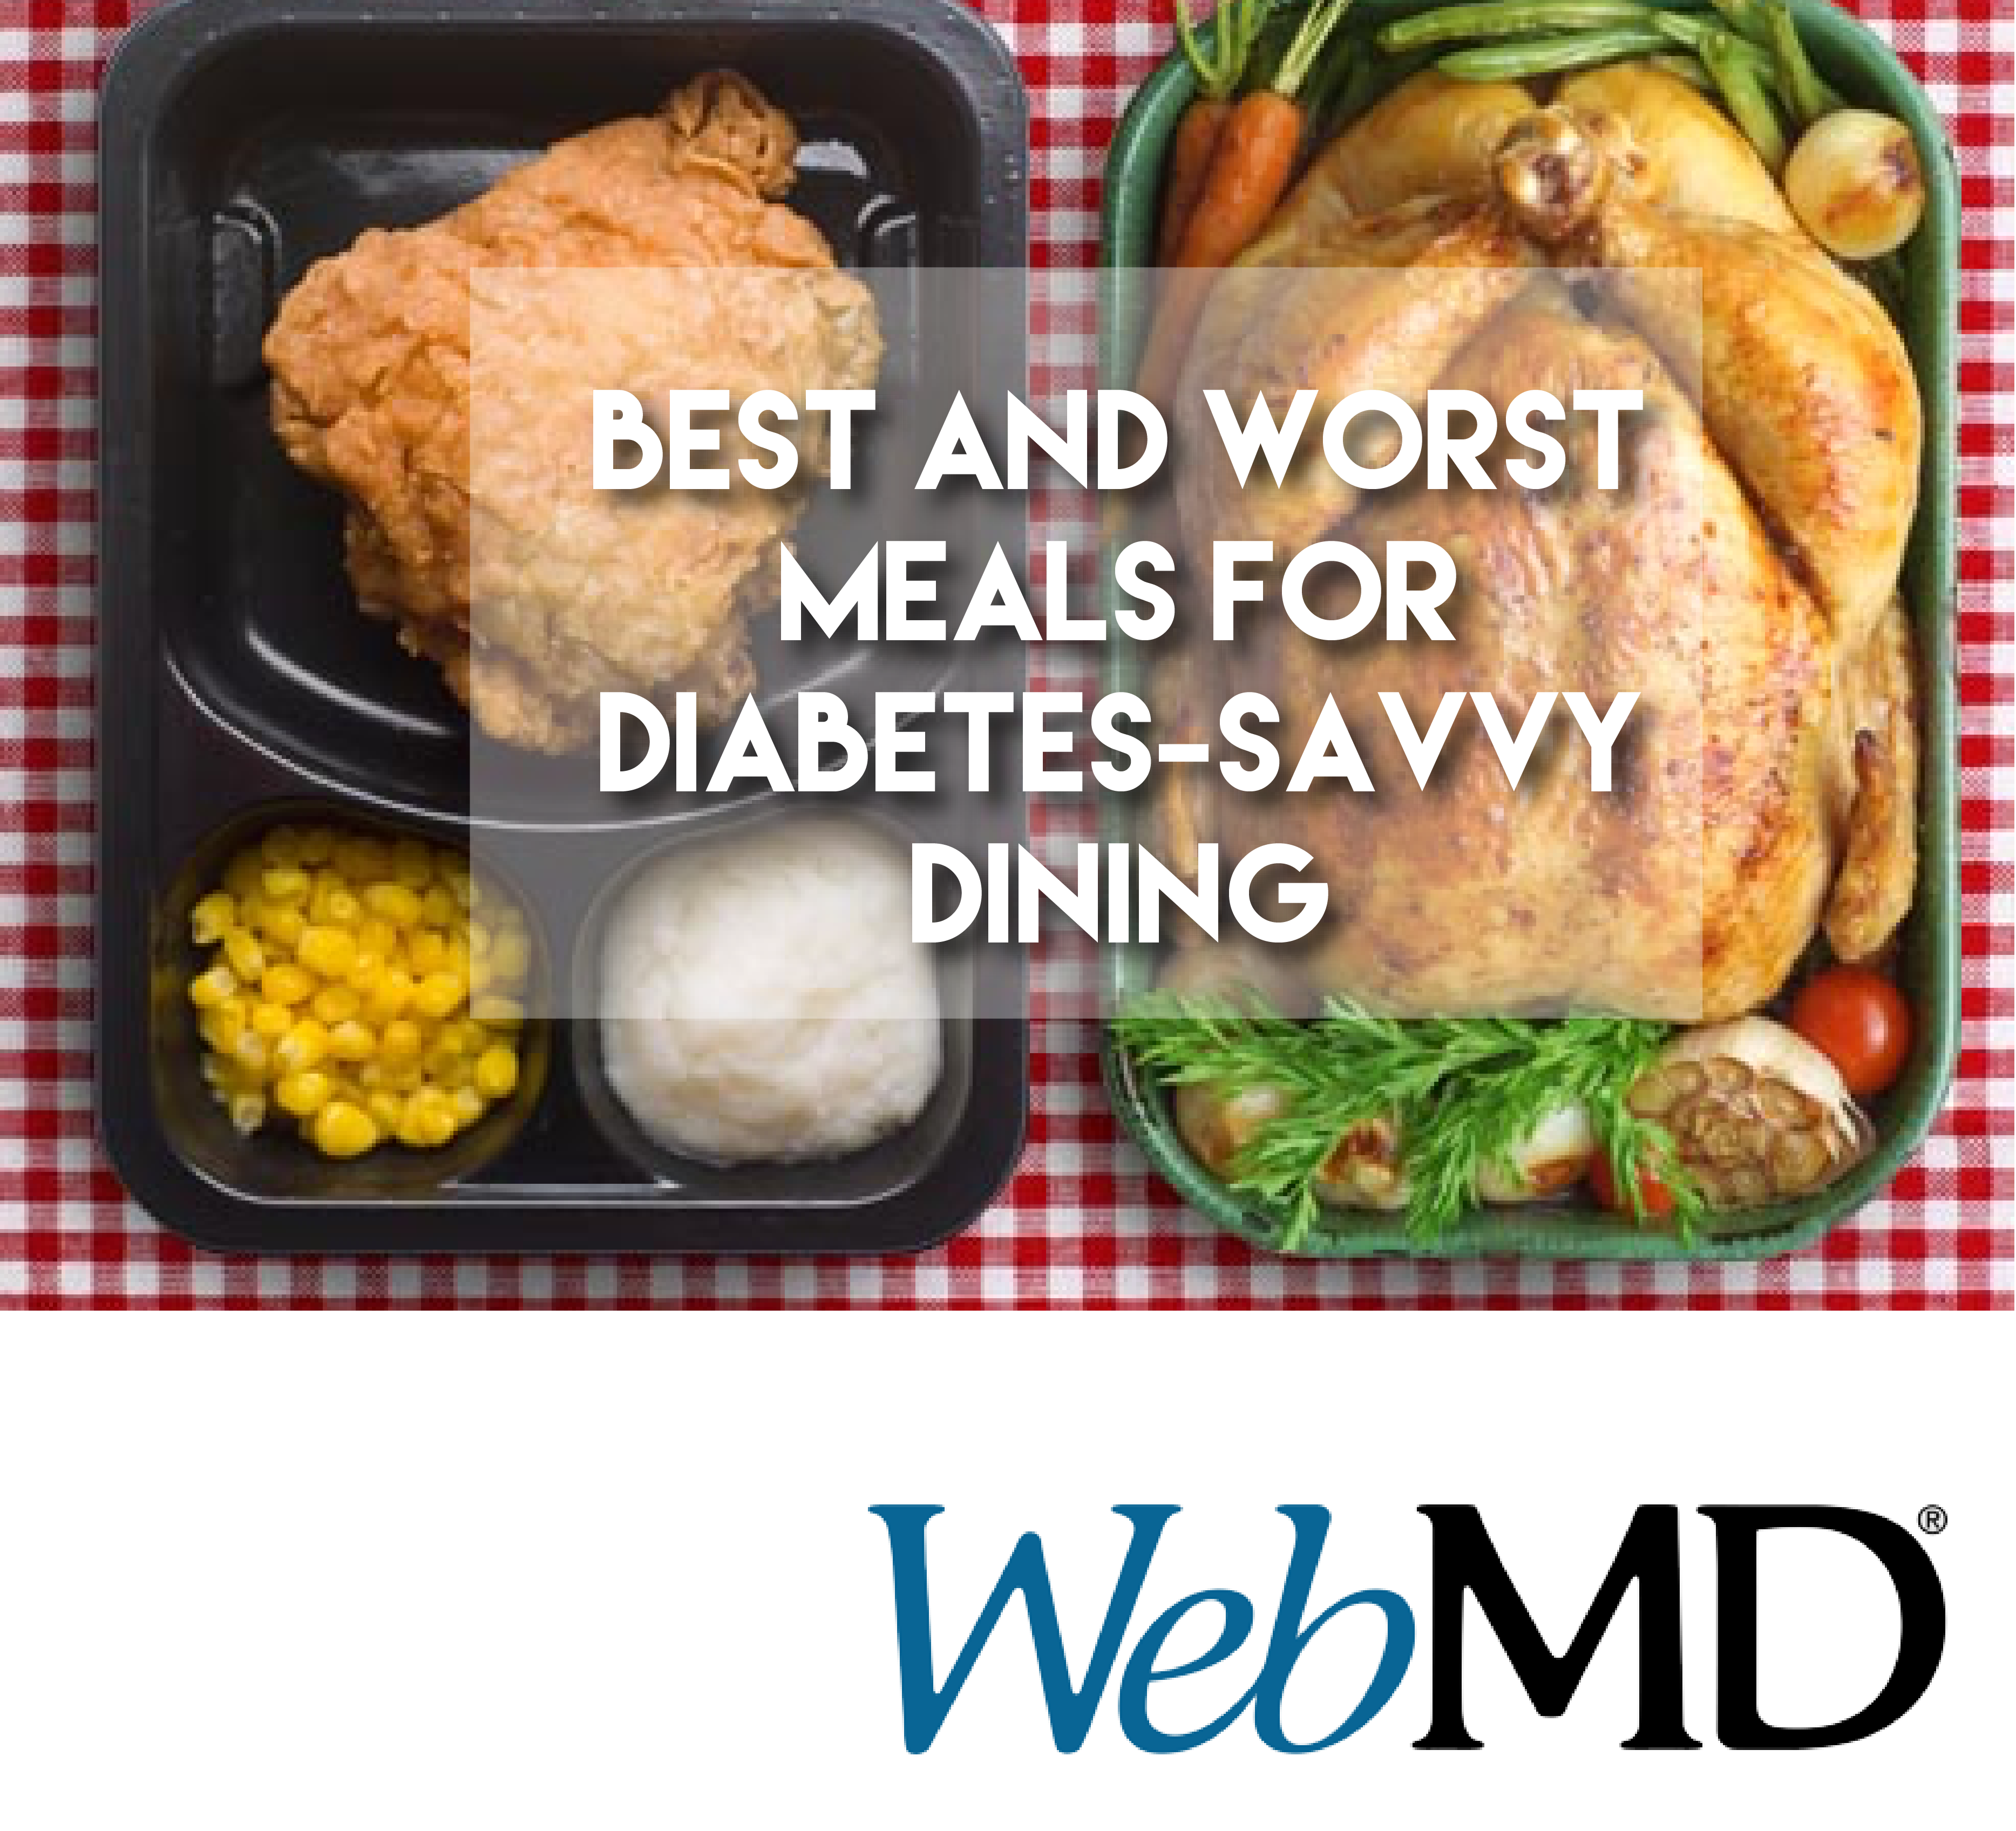 Best And Worst Meals For Diabetes Savvy Dining Diabetes Meal Meals Diabetic Cooking Diabetic Meals Planner Meals